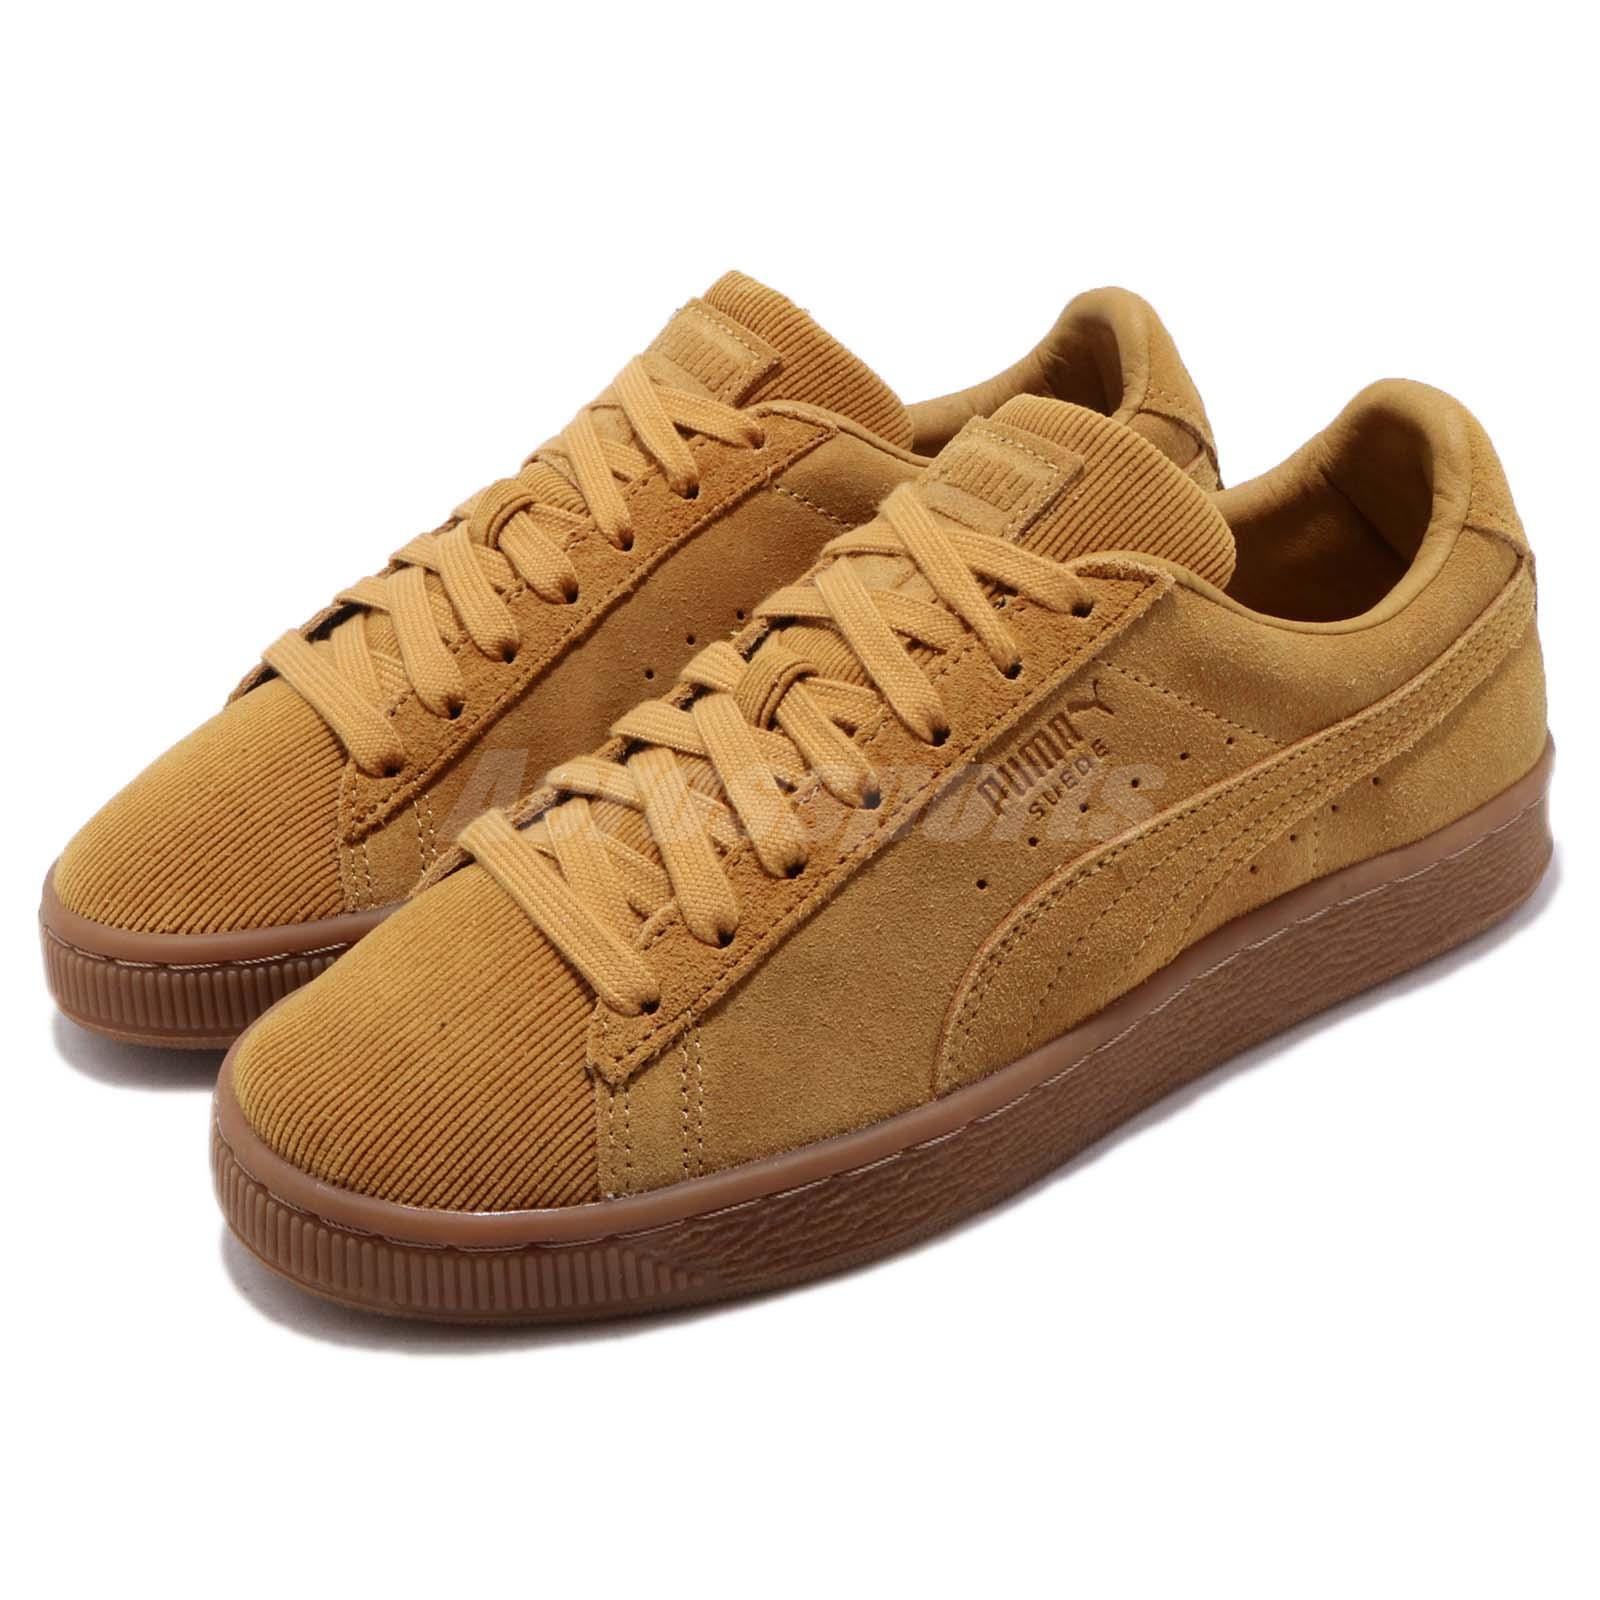 buy online c14e6 c5067 Details about Puma Suede Classic Pincord Buckthorn Brown Gum Men Casual  Shoe Sneaker 366235-03